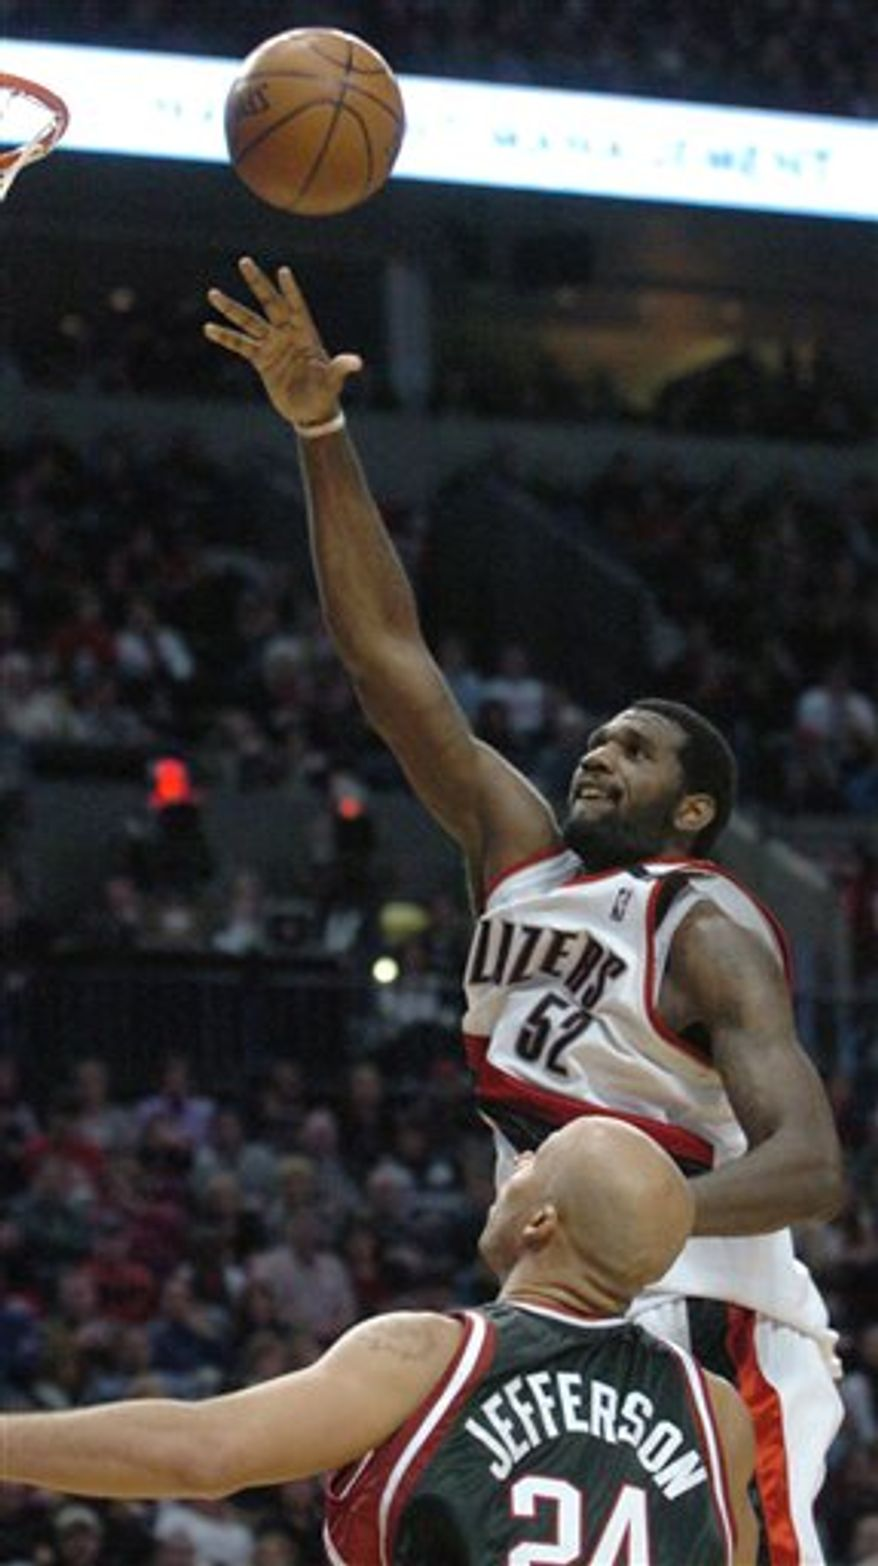 FILE - In this Jan. 19, 2009, file photo, Portland Trail Blazers' Greg Oden (52) shoots over Milwaukee Bucks' Richard Jefferson (24) during the second half of an NBA basketball game in Portland, Ore. Oden will have microfracture surgery on his left knee and will not play in the 2010 season. Oden has not played since December 2009 because he needed surgery to repair a fractured left patella. (AP Photo/Greg Wahl-Stephens, File)